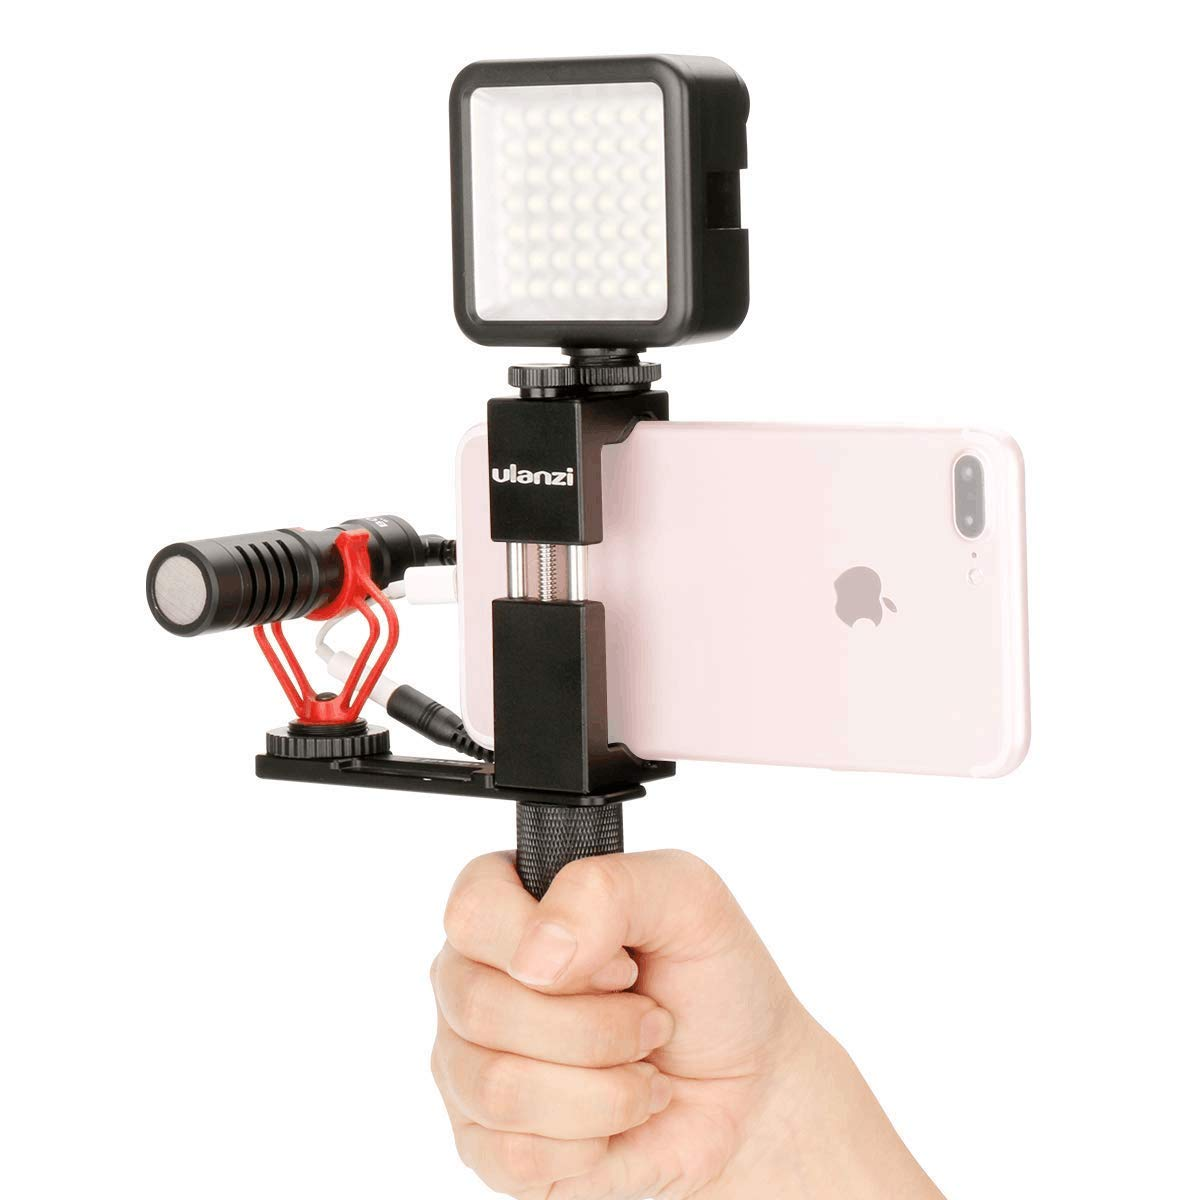 Ulanzi Pocket Rig for Smartphones with Boya by-MM1 Shotgun Microphone and 49 LED Video Light Cold Shoe Plate for iPhone Xs Xs Max X 8 7 Plus Filmmaking Professional Videography by ULANZI